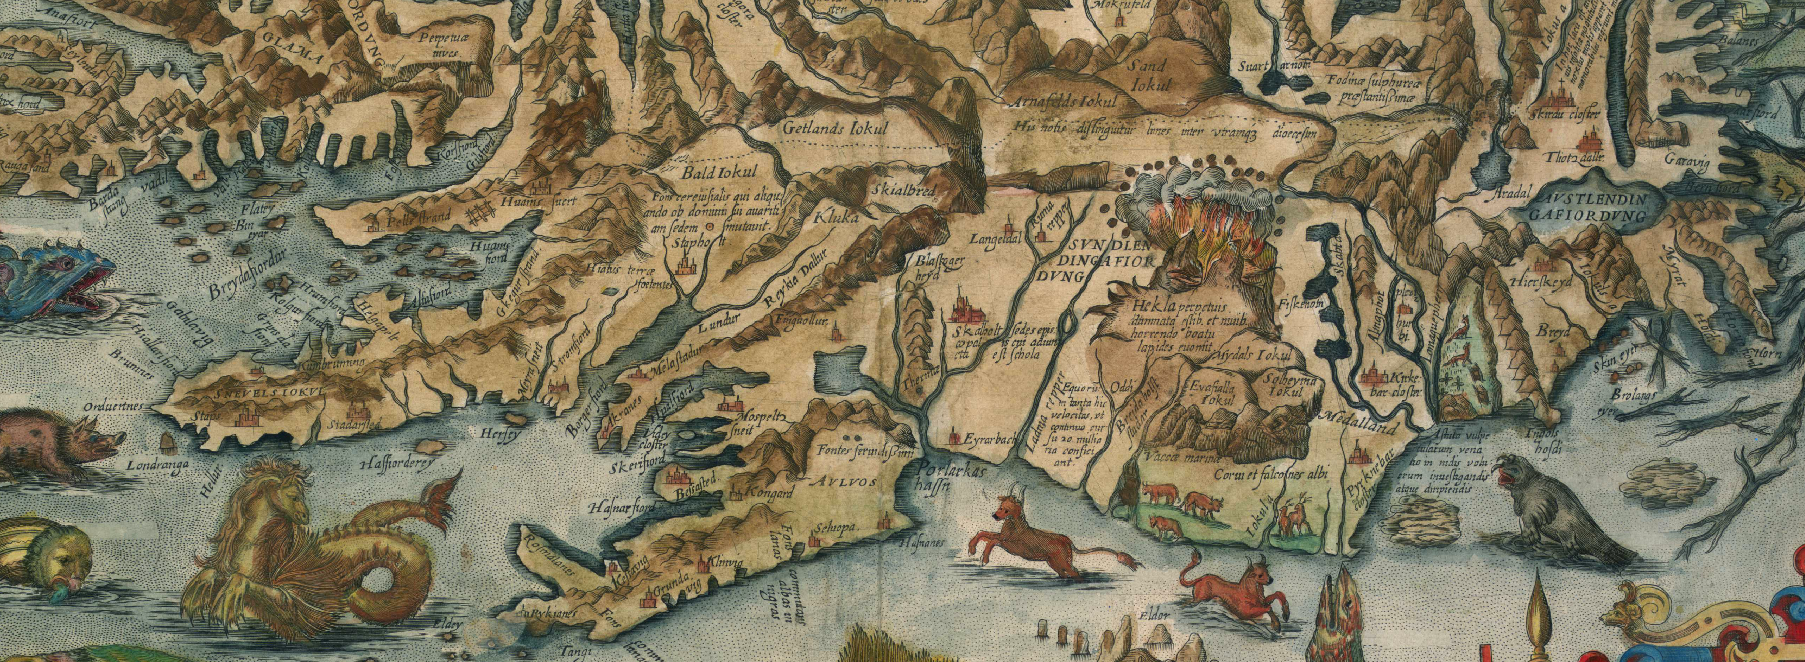 "Detail of the historical map ""Islandia"", by Jean Boisseau. Théatre Géographique du Royaume de France. France, about 1648. The map is in the public domain."